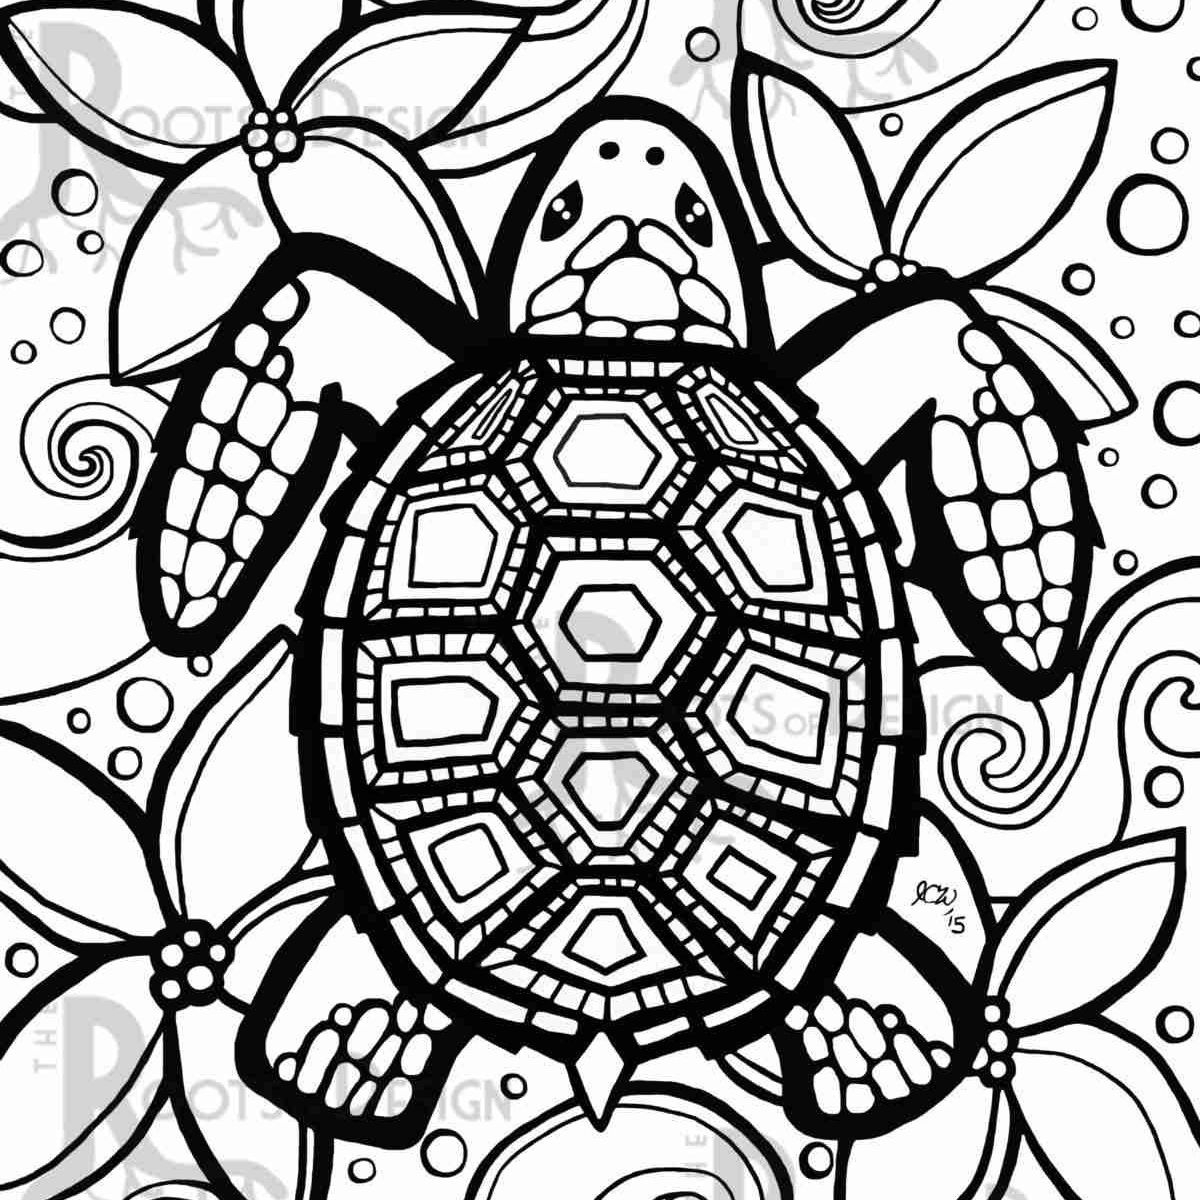 Sea Turtle Coloring Page Turtle Coloring Pages New Photos Lovely Sea For Drawingcoloring Page